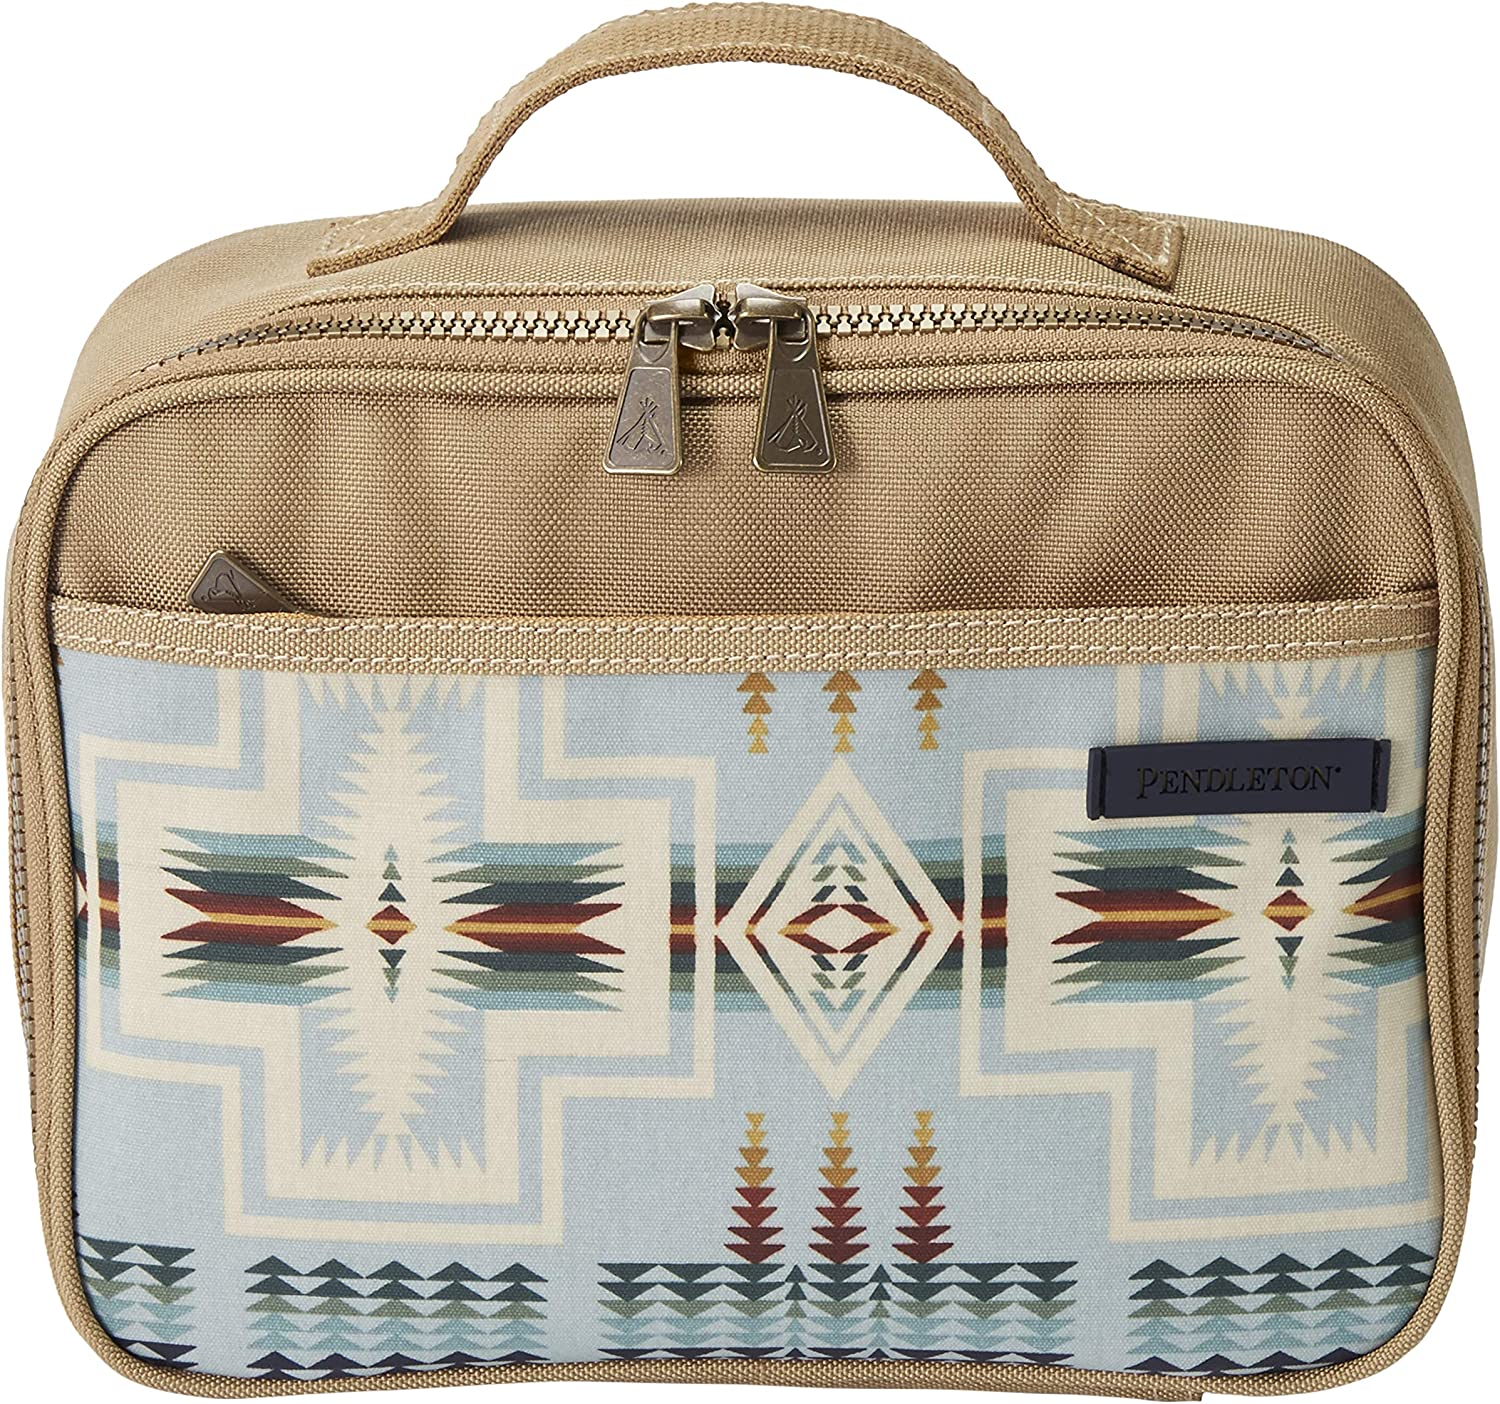 Amazon Com Pendleton Men S Canopy Canvas Lunchbox Harding Aqua 1 Sz Clothing Harding sails is a full service sail loft located in marion, massachusetts providing design and construction of cruising and racing sails, repair, laundry, rigging, and sailing accessories. pendleton men s canopy canvas lunchbox harding aqua 1 sz